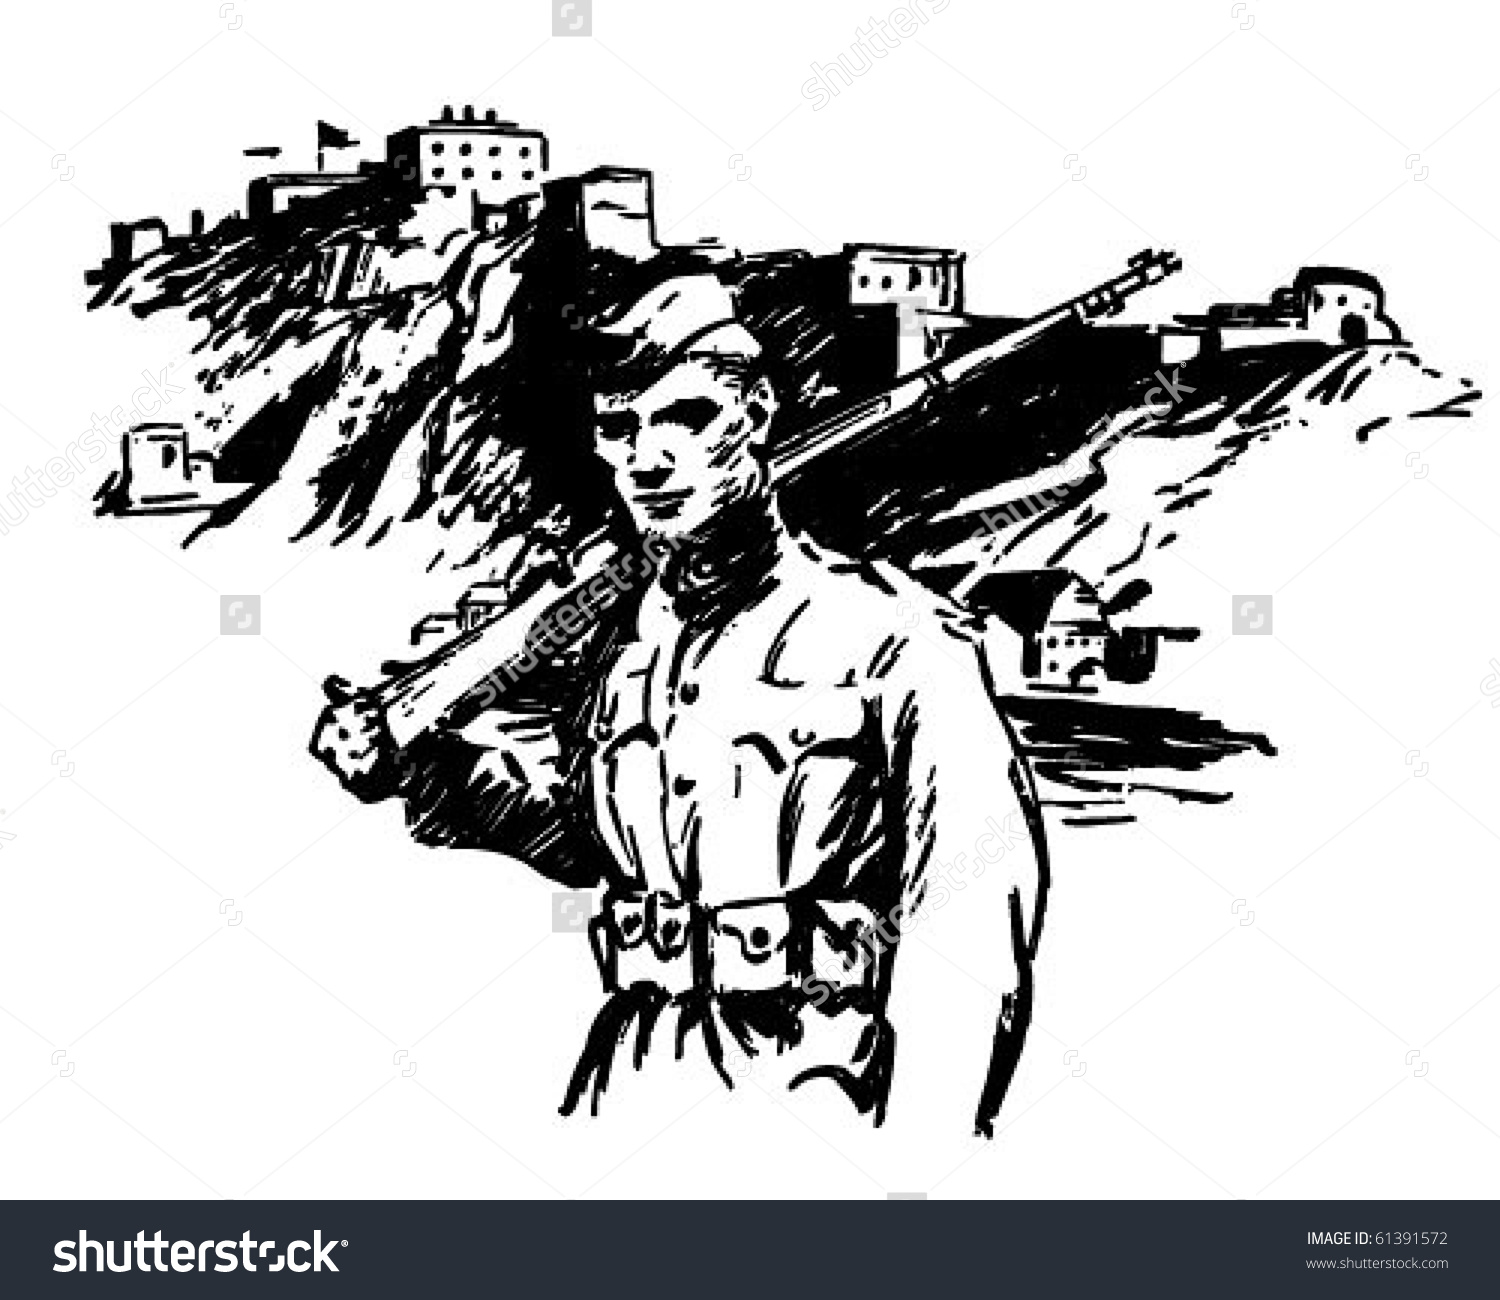 World War Ii Clip Art Free Related Keywords & Suggestions.